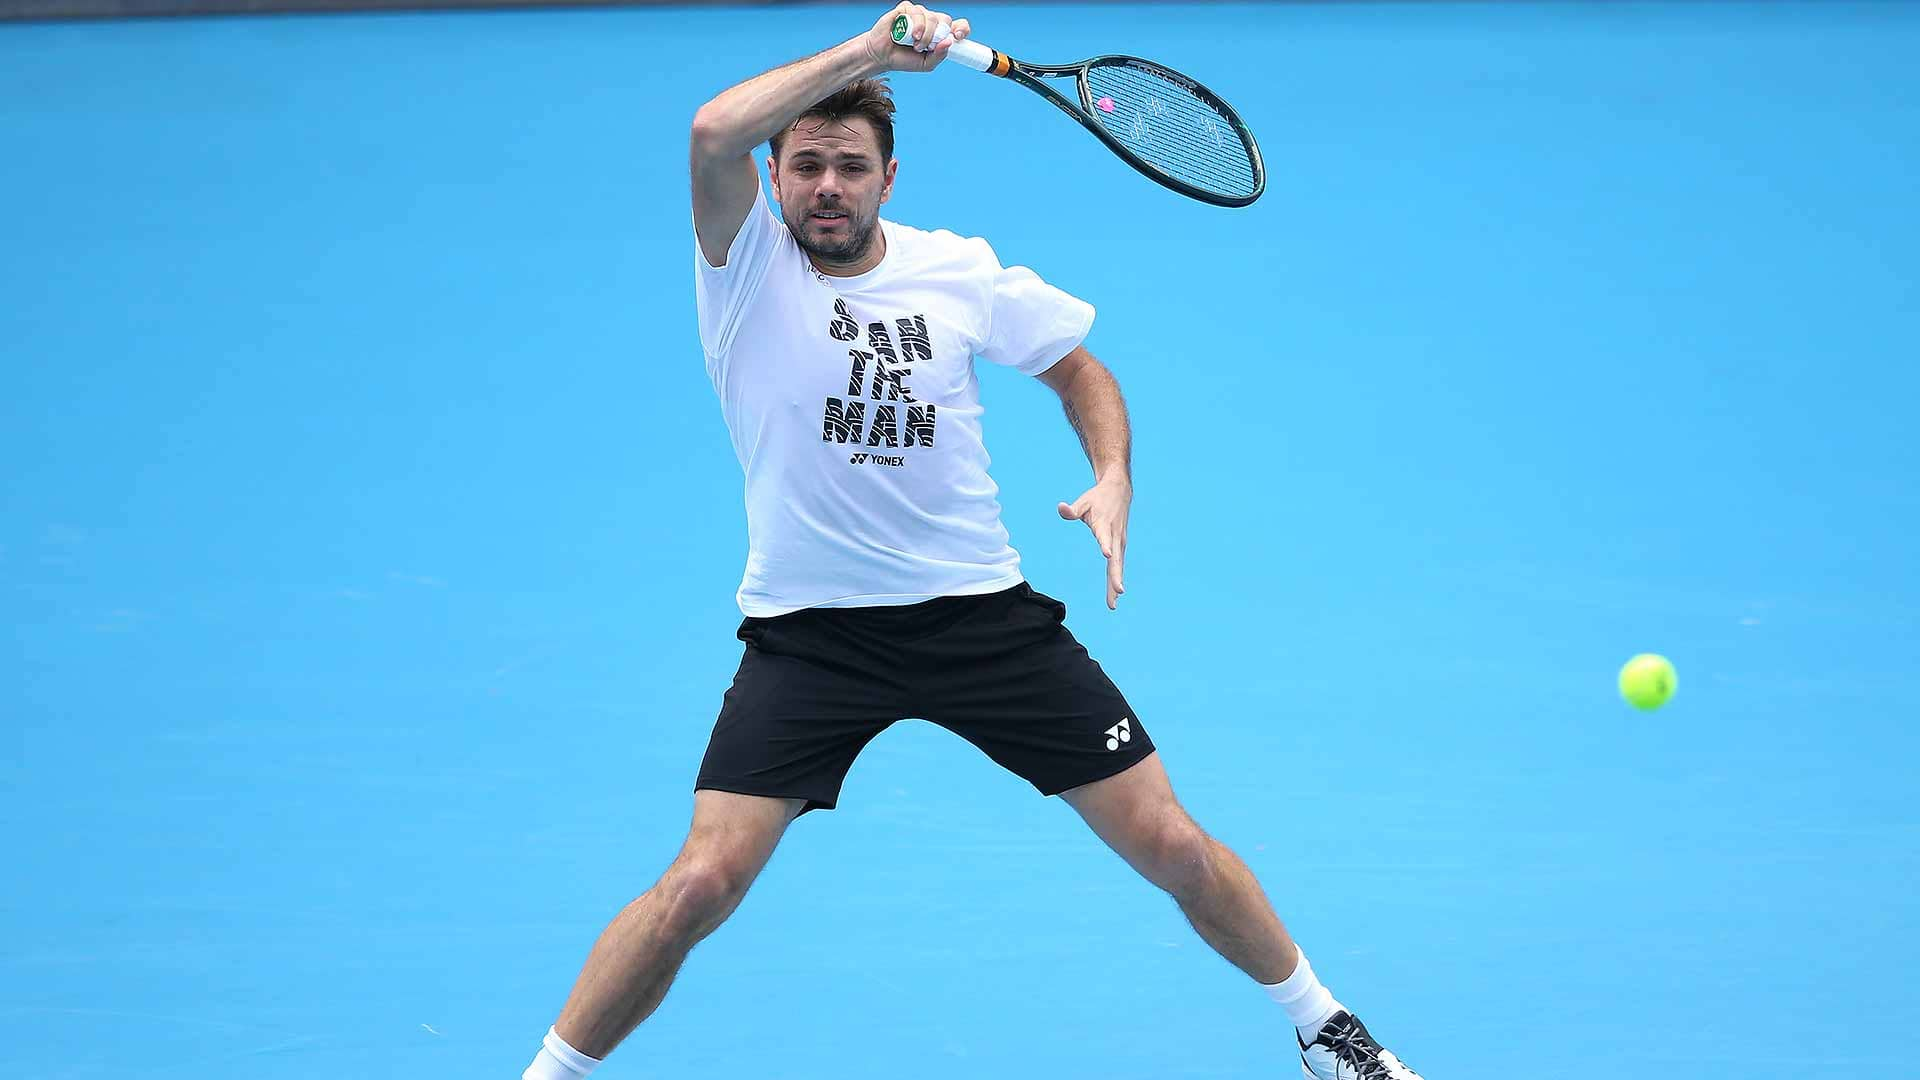 Stan Wawrinka is going for his second Australian Open title this fortnight.